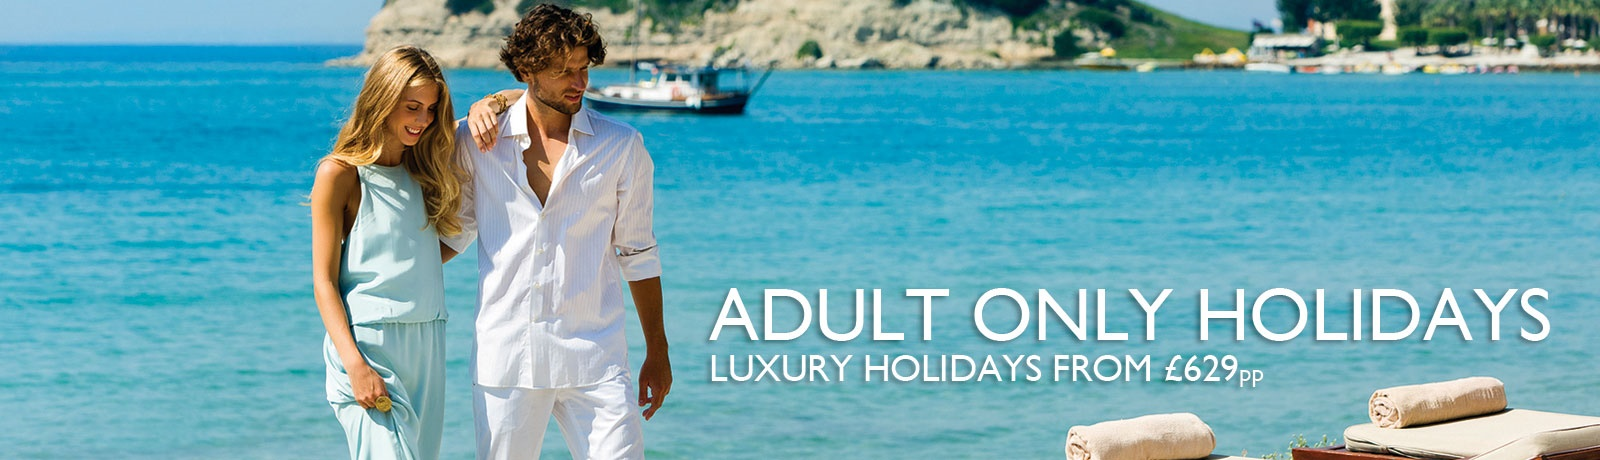 Luxury Adult Only Holidays